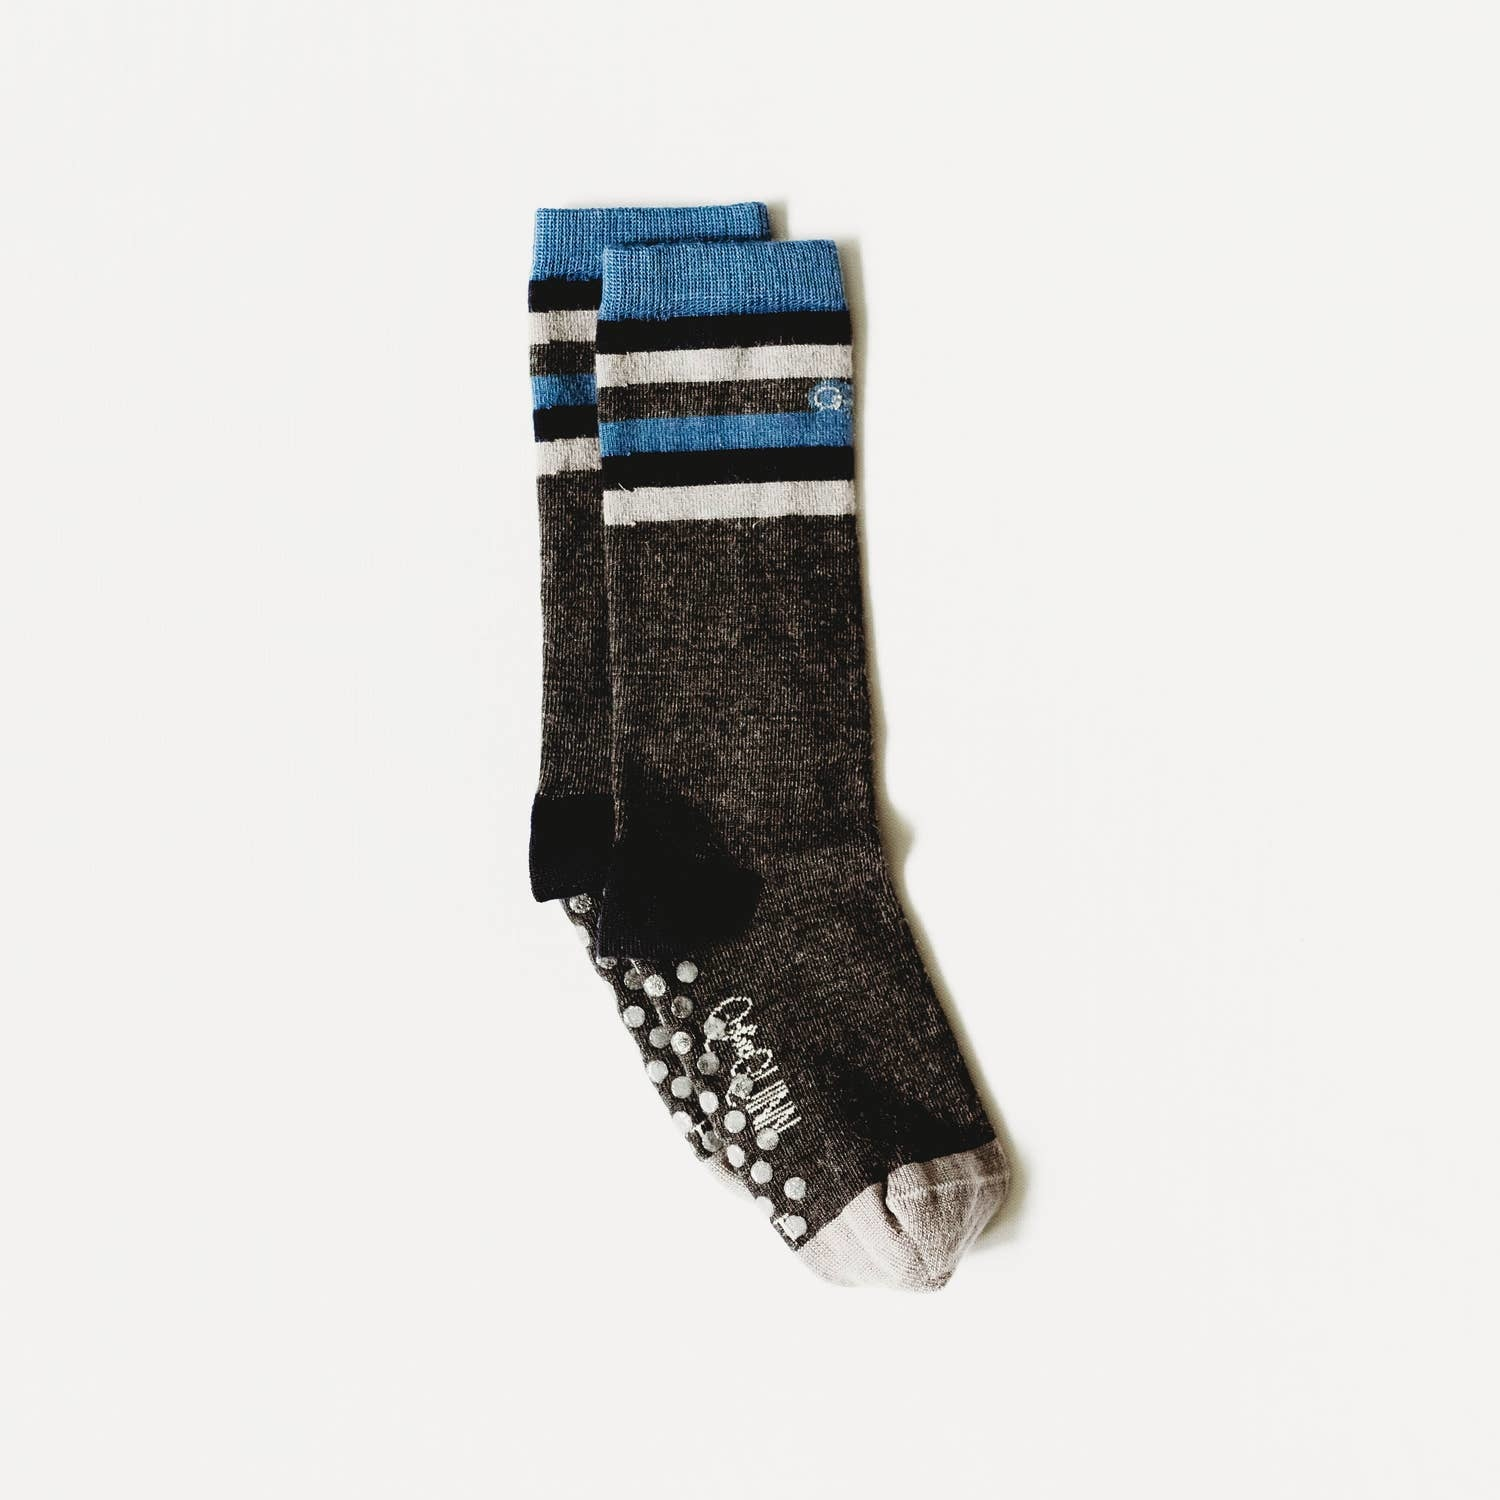 Q for Quinn Merino Wool Socks- Half Stripe